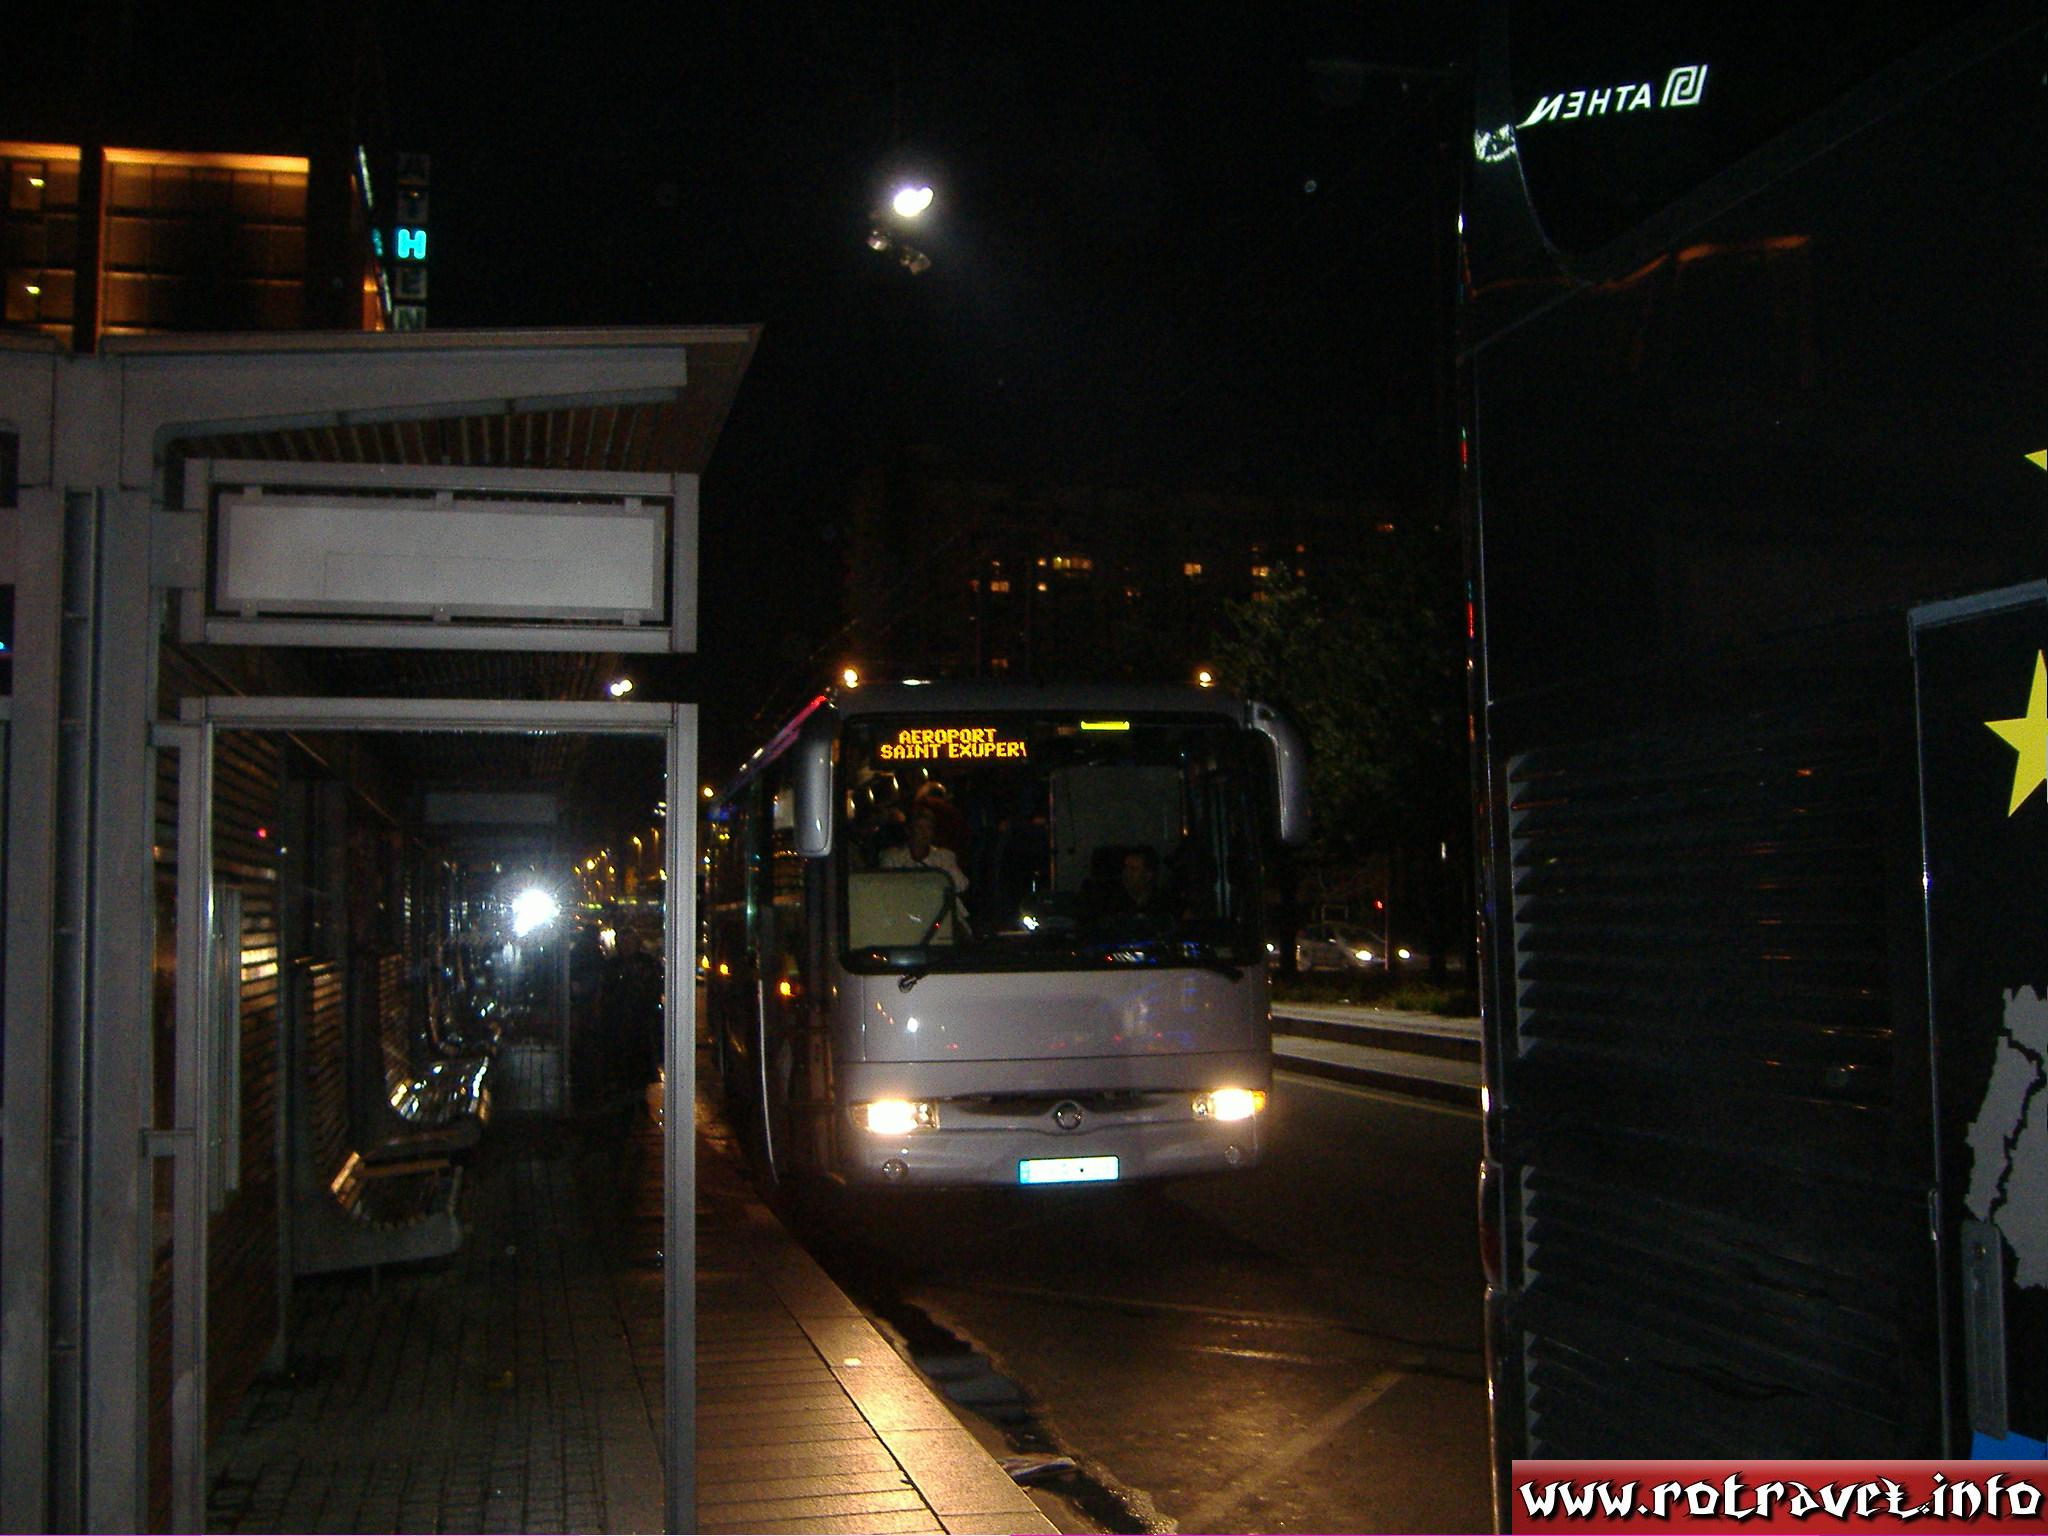 A bus which take you to the Lyon-Saint Exupéry Airport